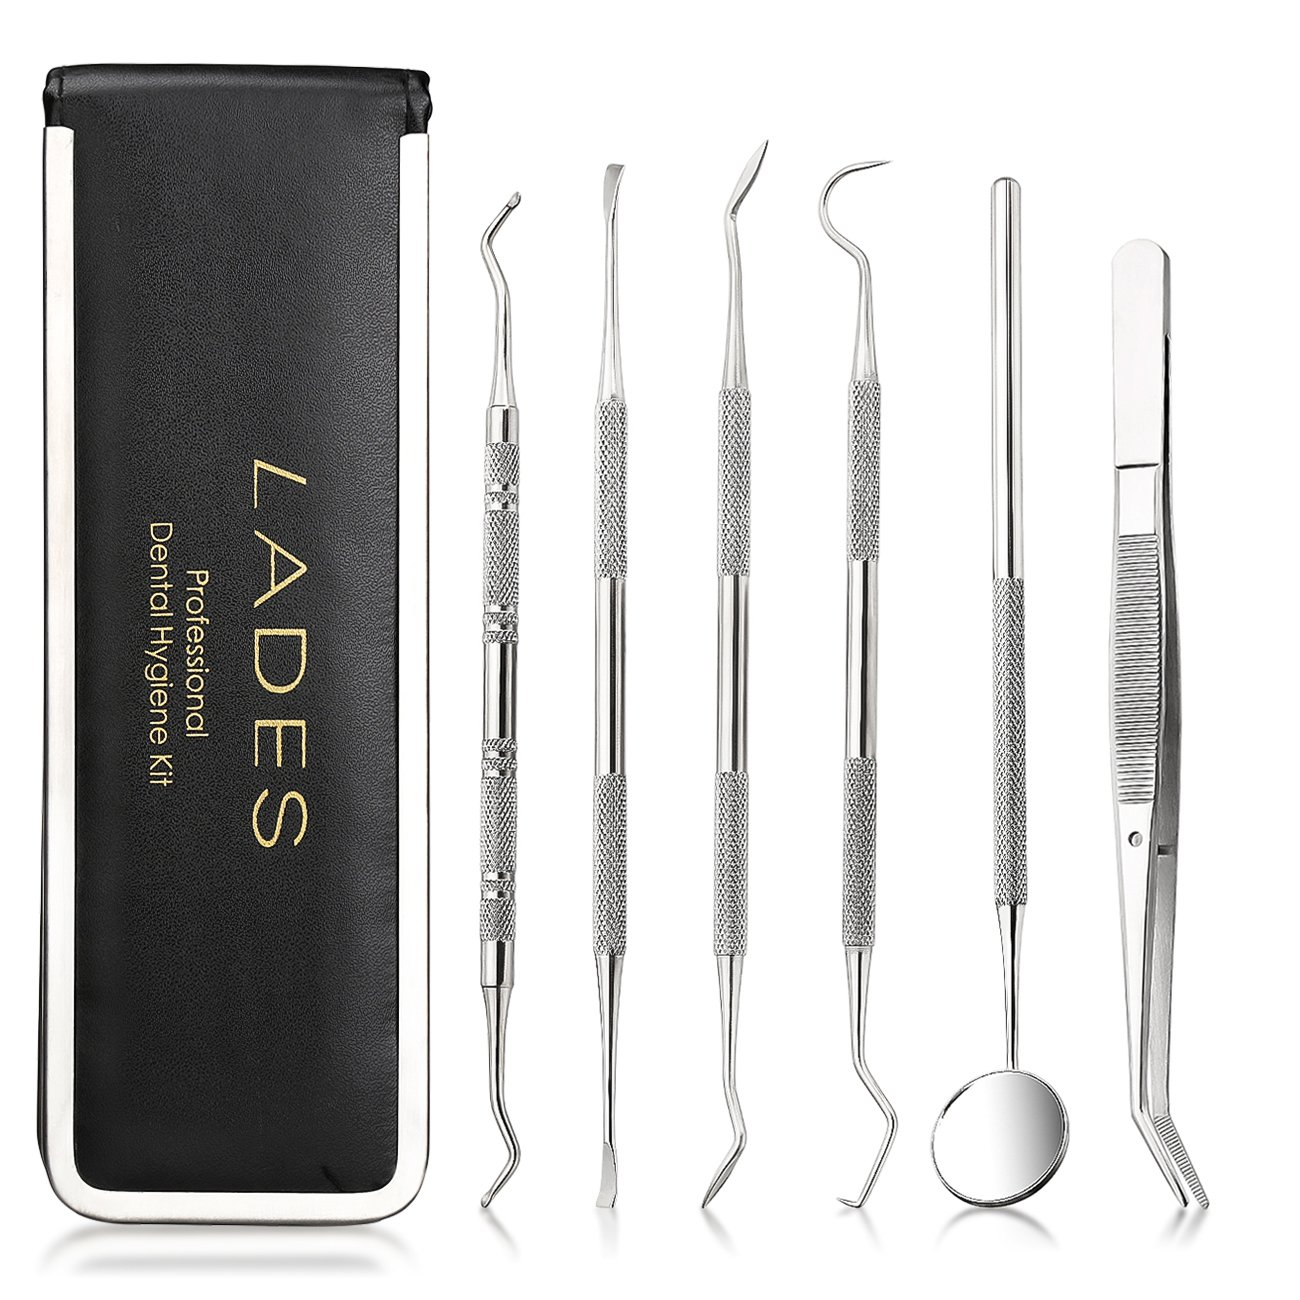 Dental Tool Kit - Calculus and Plaque Remover Set Tarter Scraper Dentist Prepared Tools Kit for Tooth Cleaning Oral Care